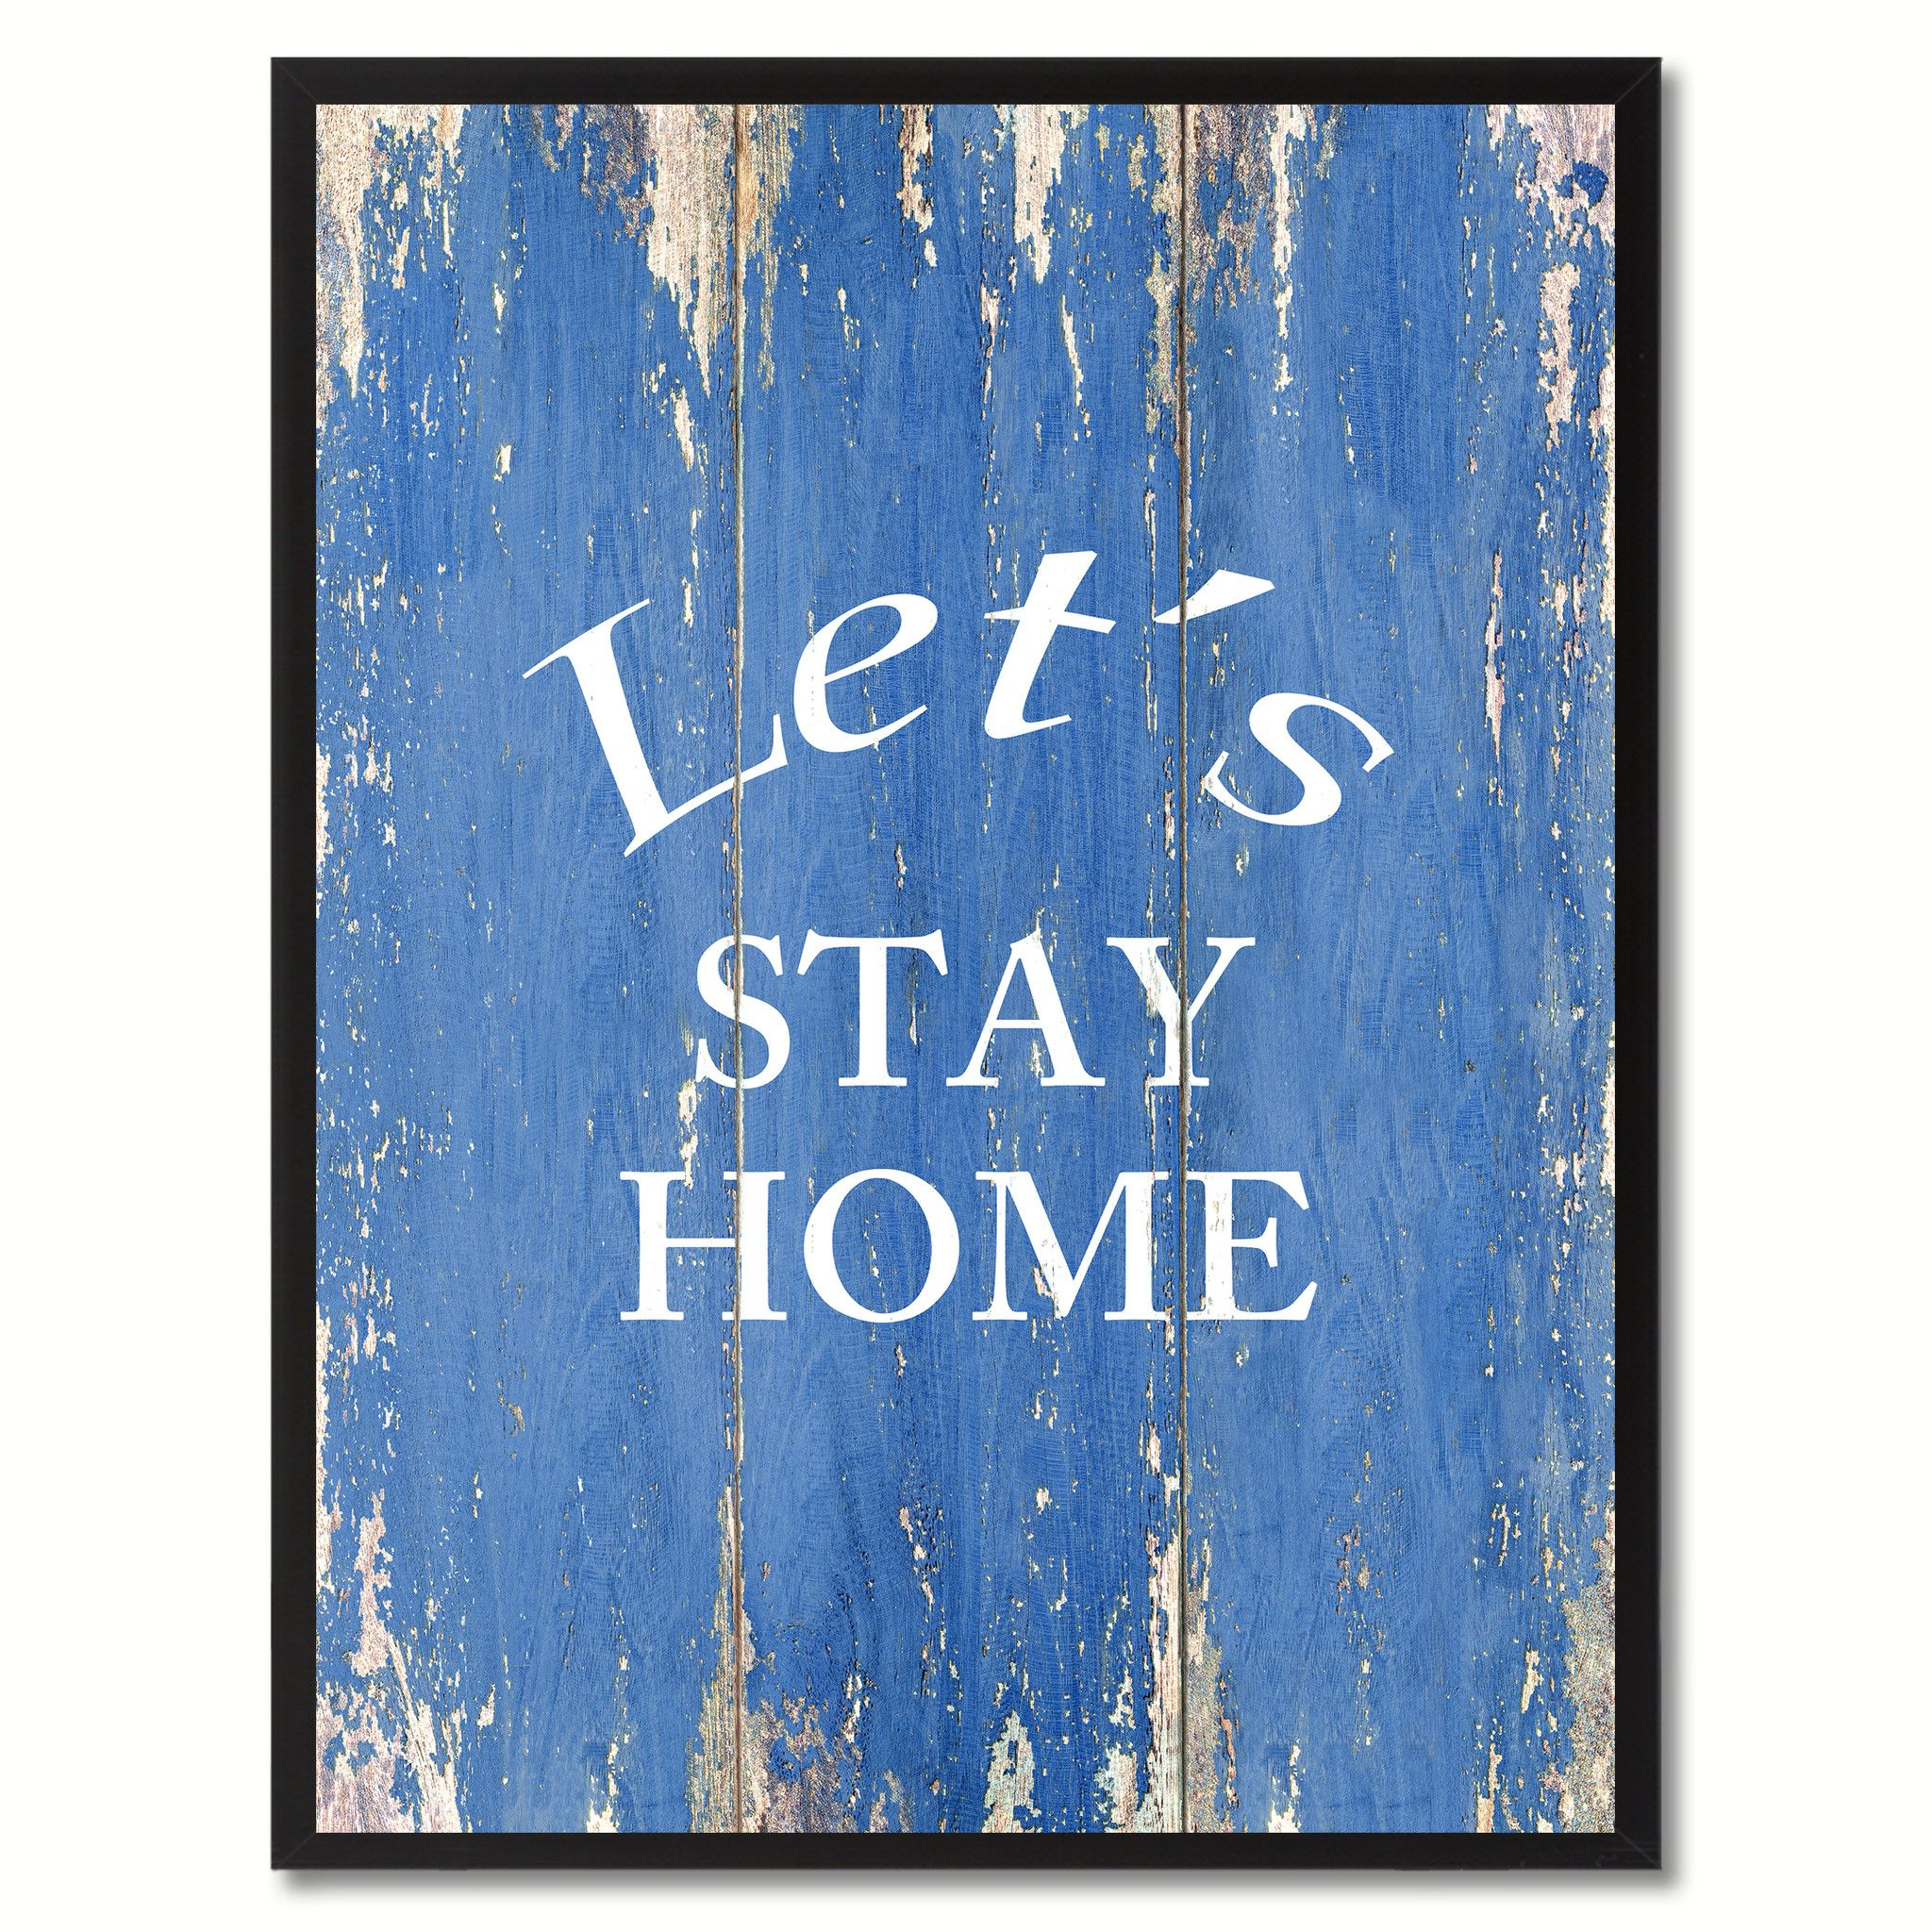 Letus stay home saying canvas print black picture frame home decor